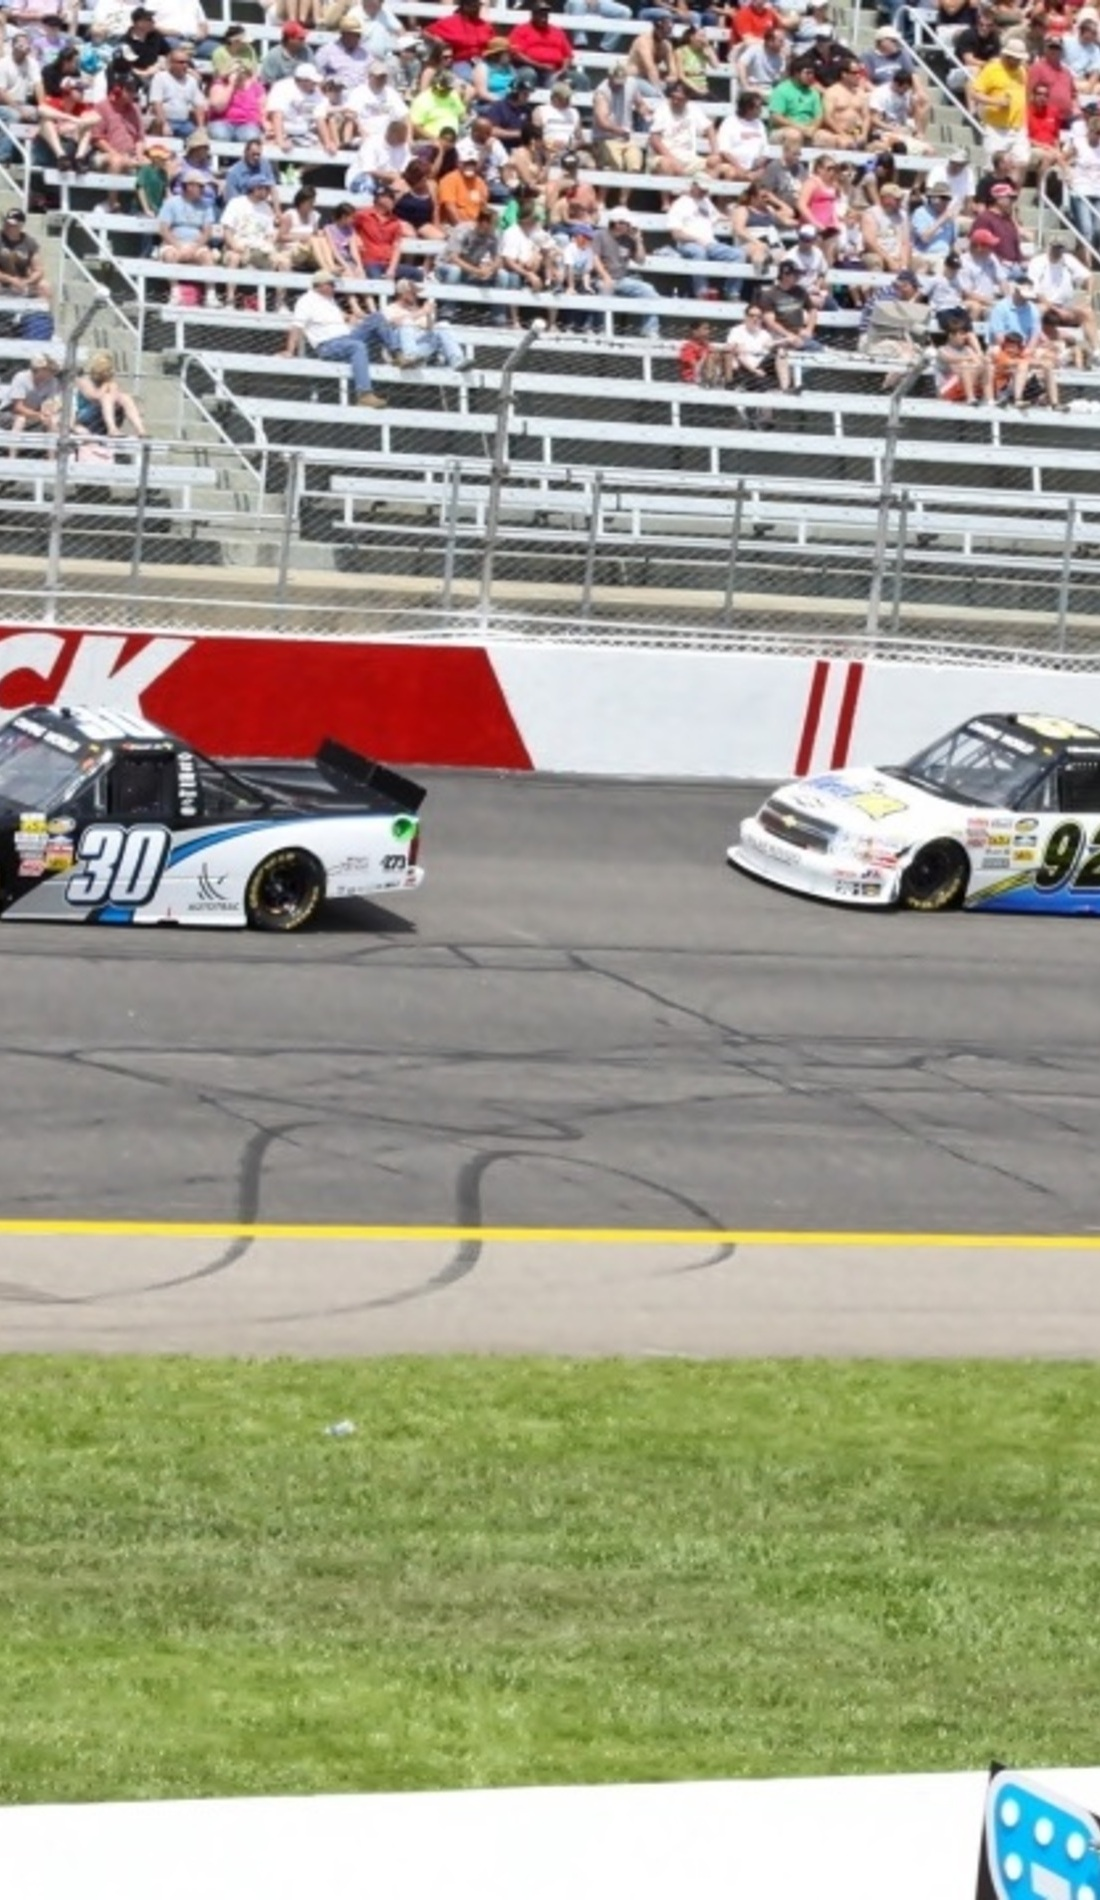 A NASCAR Camping World Truck Series live event